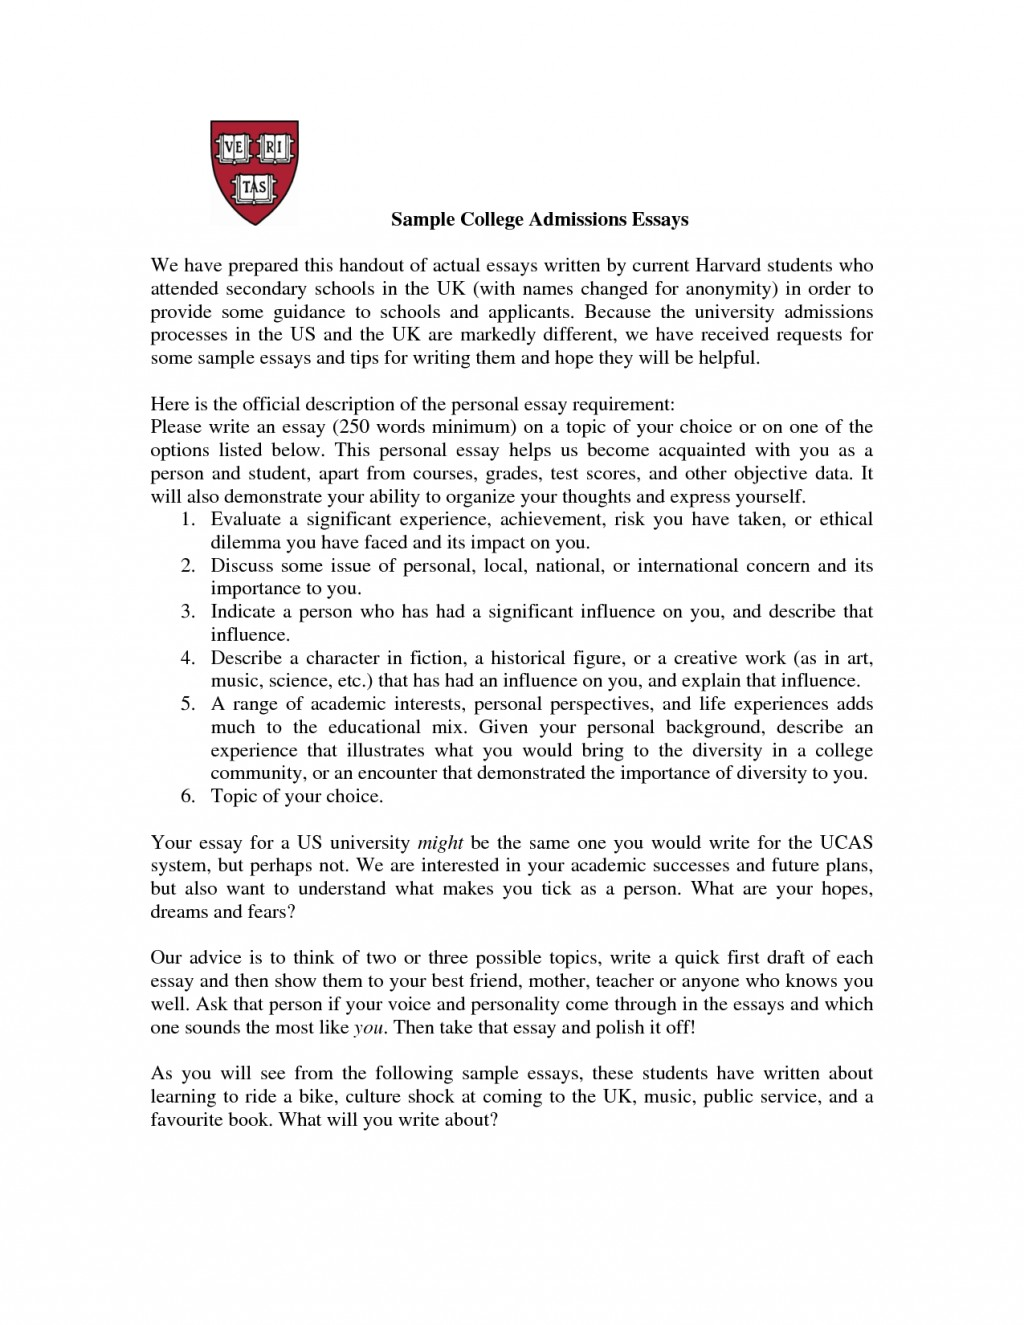 013 Dpy4cpaqnd Essay Example Common App Best Essays Samples Option 1 Prompt 2016 2017 Large